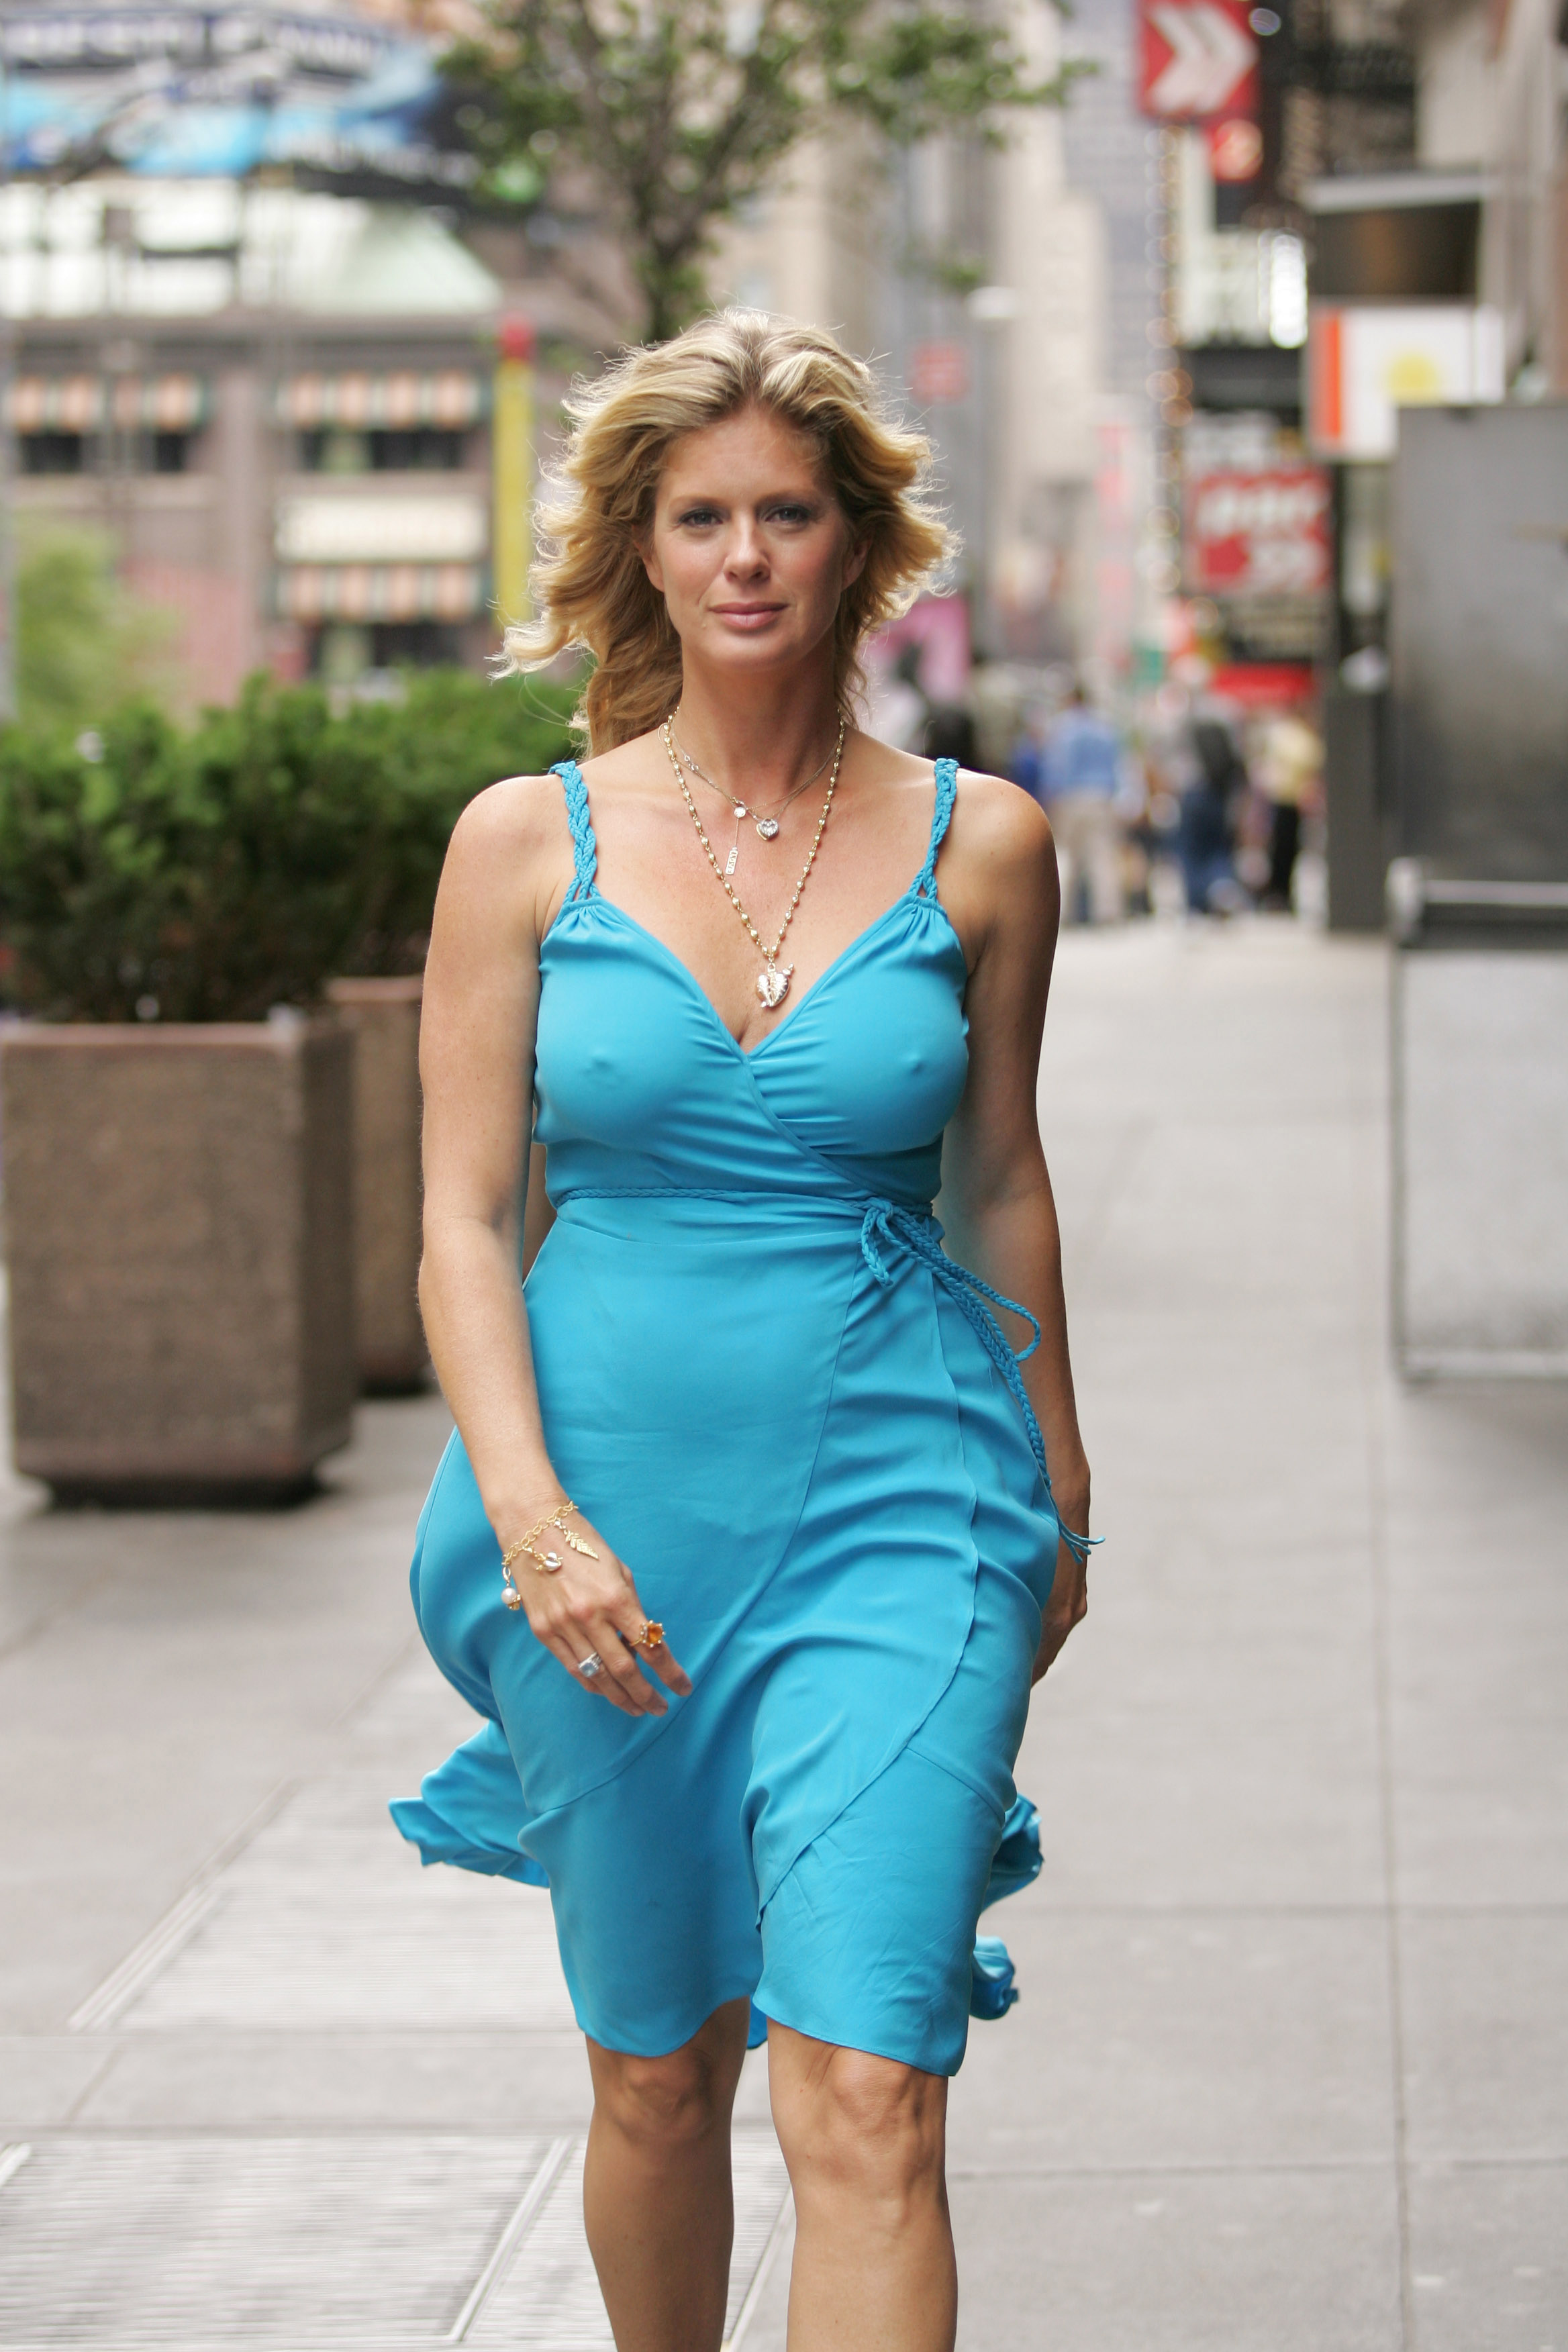 Ice Hockey - Wives/Girlfriends - Rachel Hunter | HockeyGods